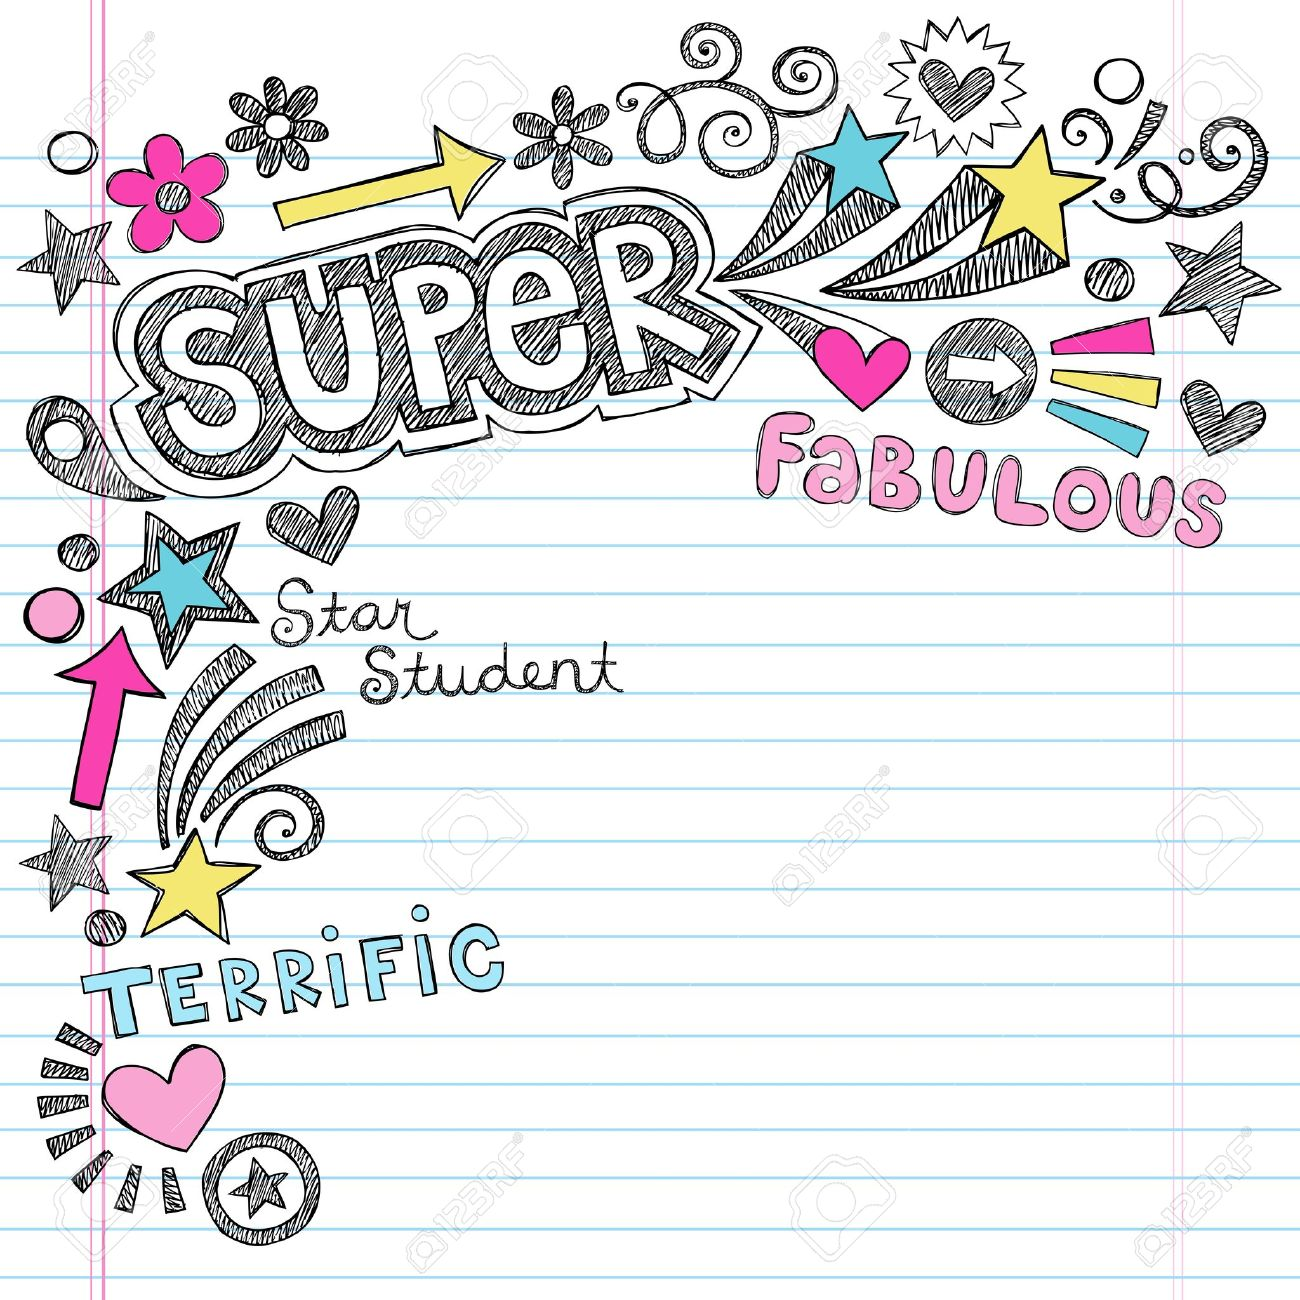 Super Student Back To School Notebook Doodles- Sketchy Hand-Drawn ...